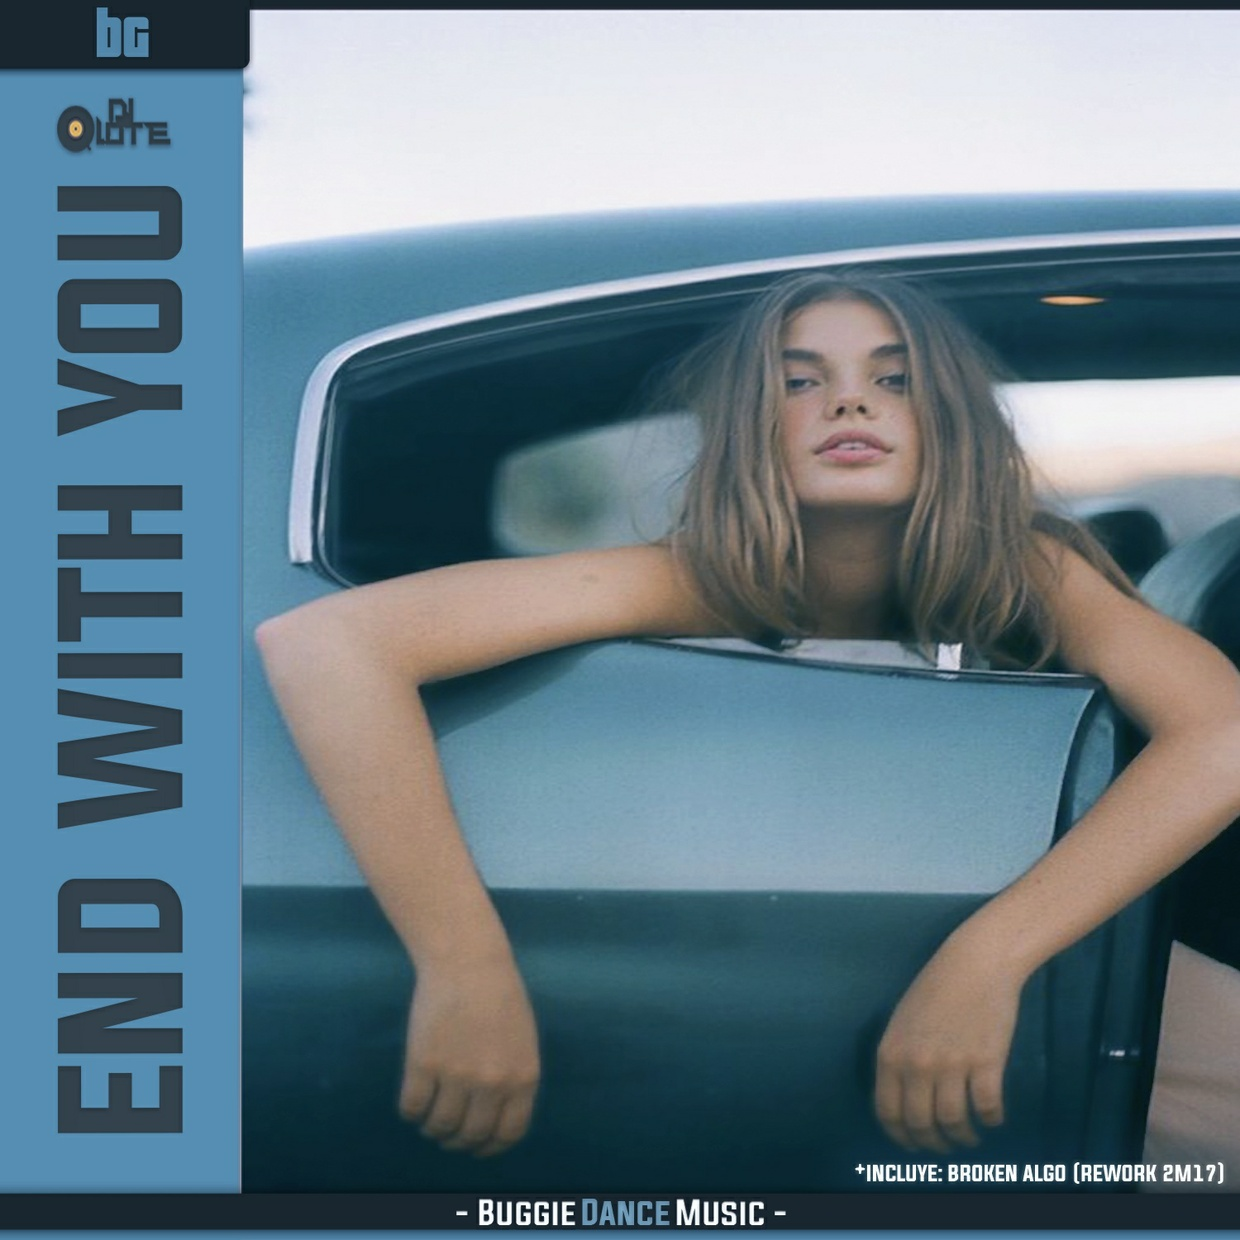 Dj Lote - End With You